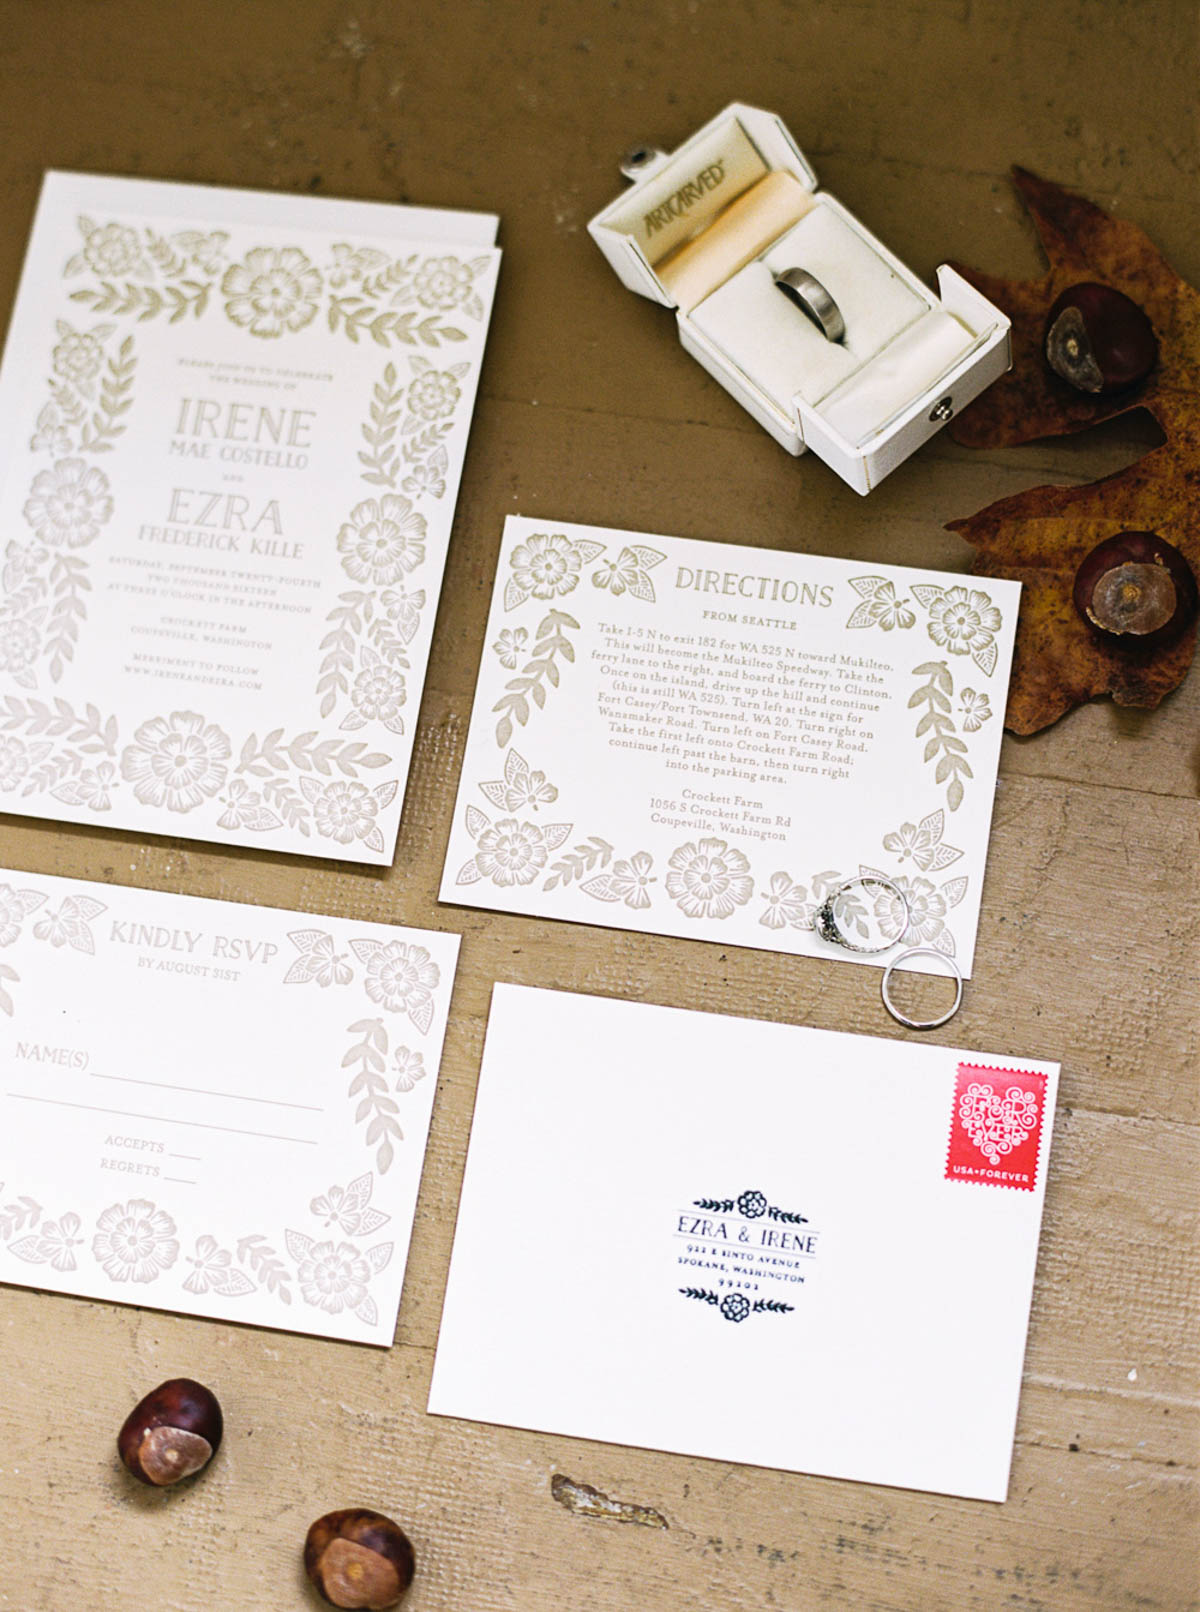 VIntage inspired wedding invitations at Crockett Farm